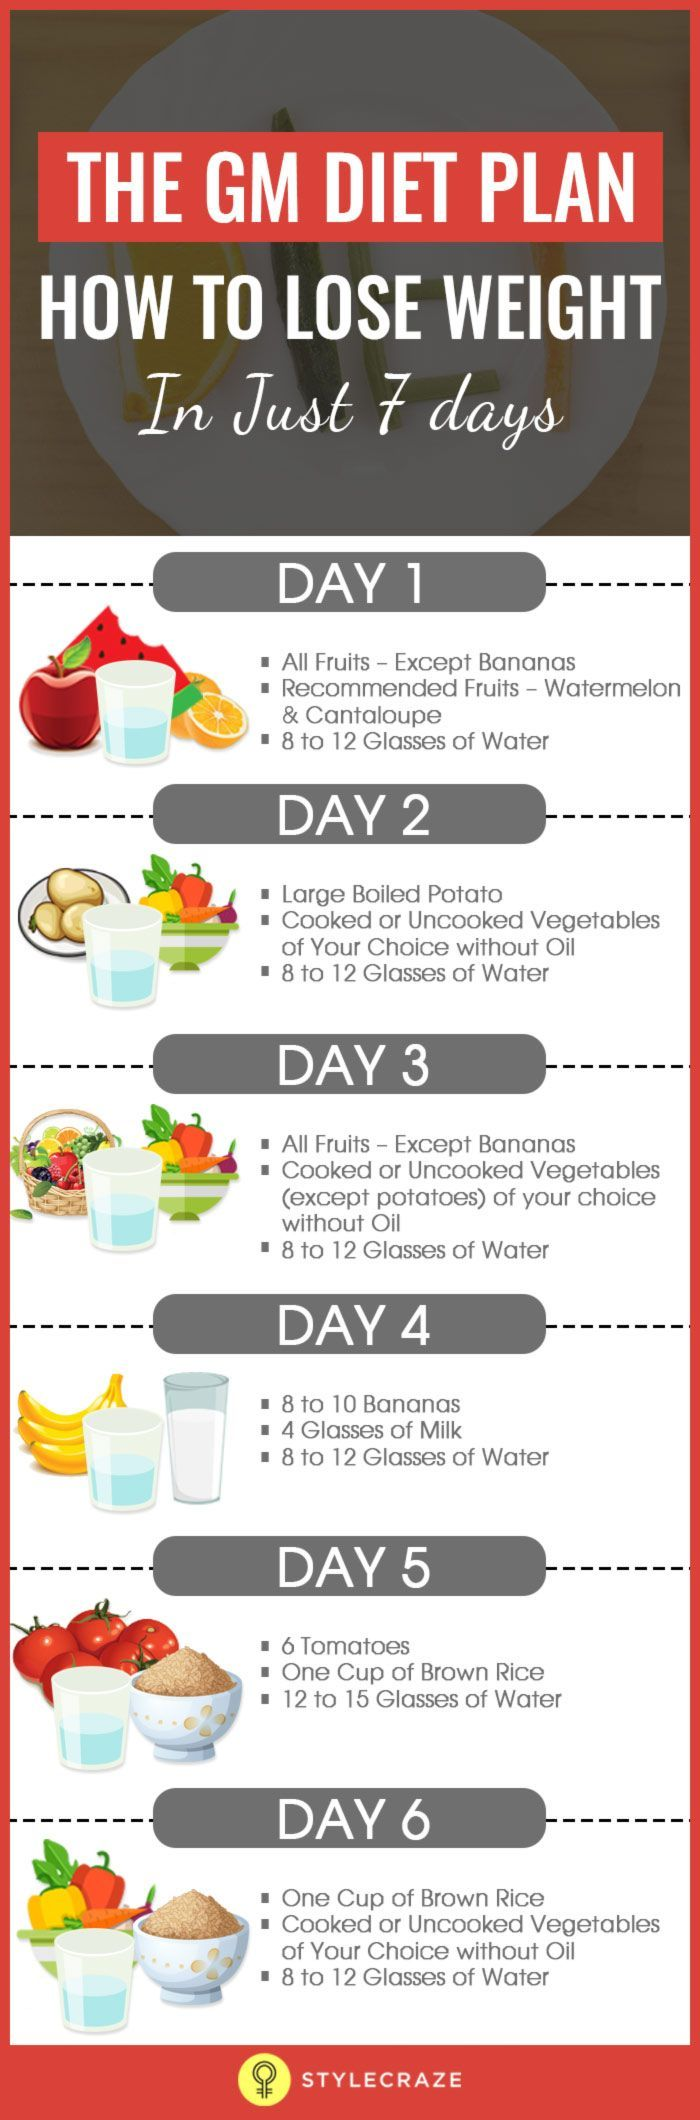 The GM Diet Plan: How To Lose Weight In Just 7 Days Stylecraze